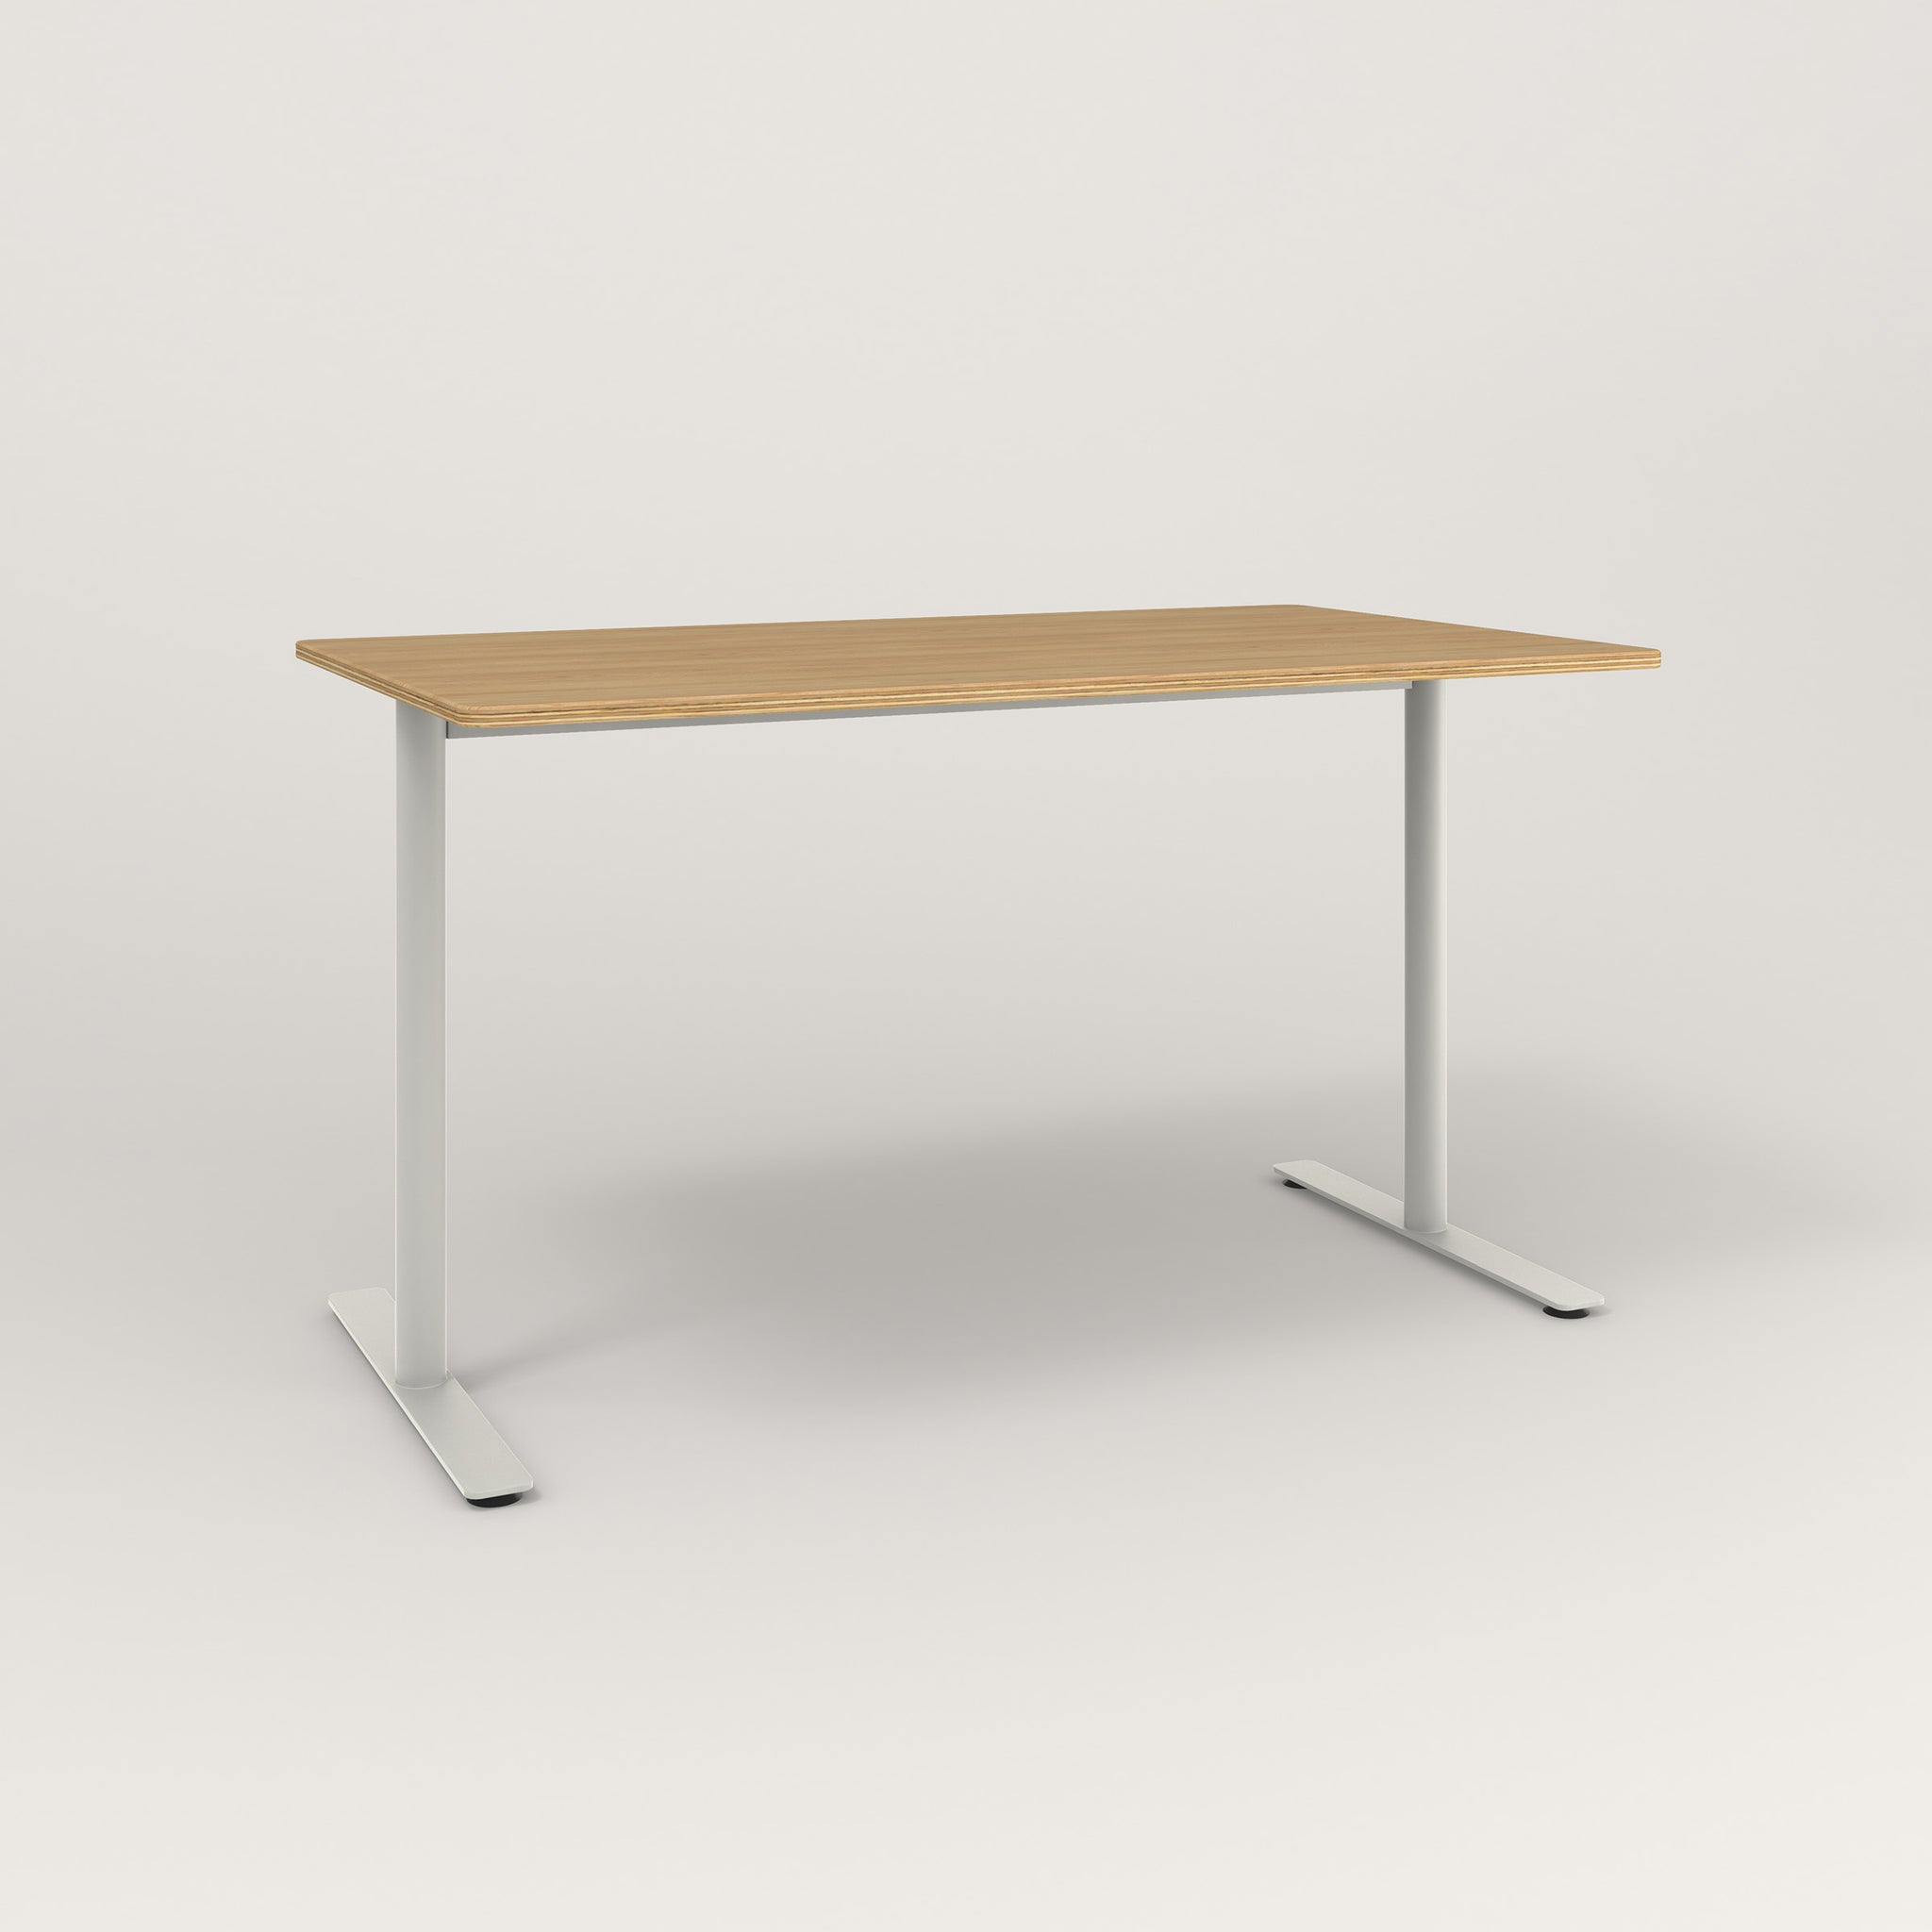 RAD Cafe Table, Rectangular X Base T Leg in white oak europly and white powder coat.